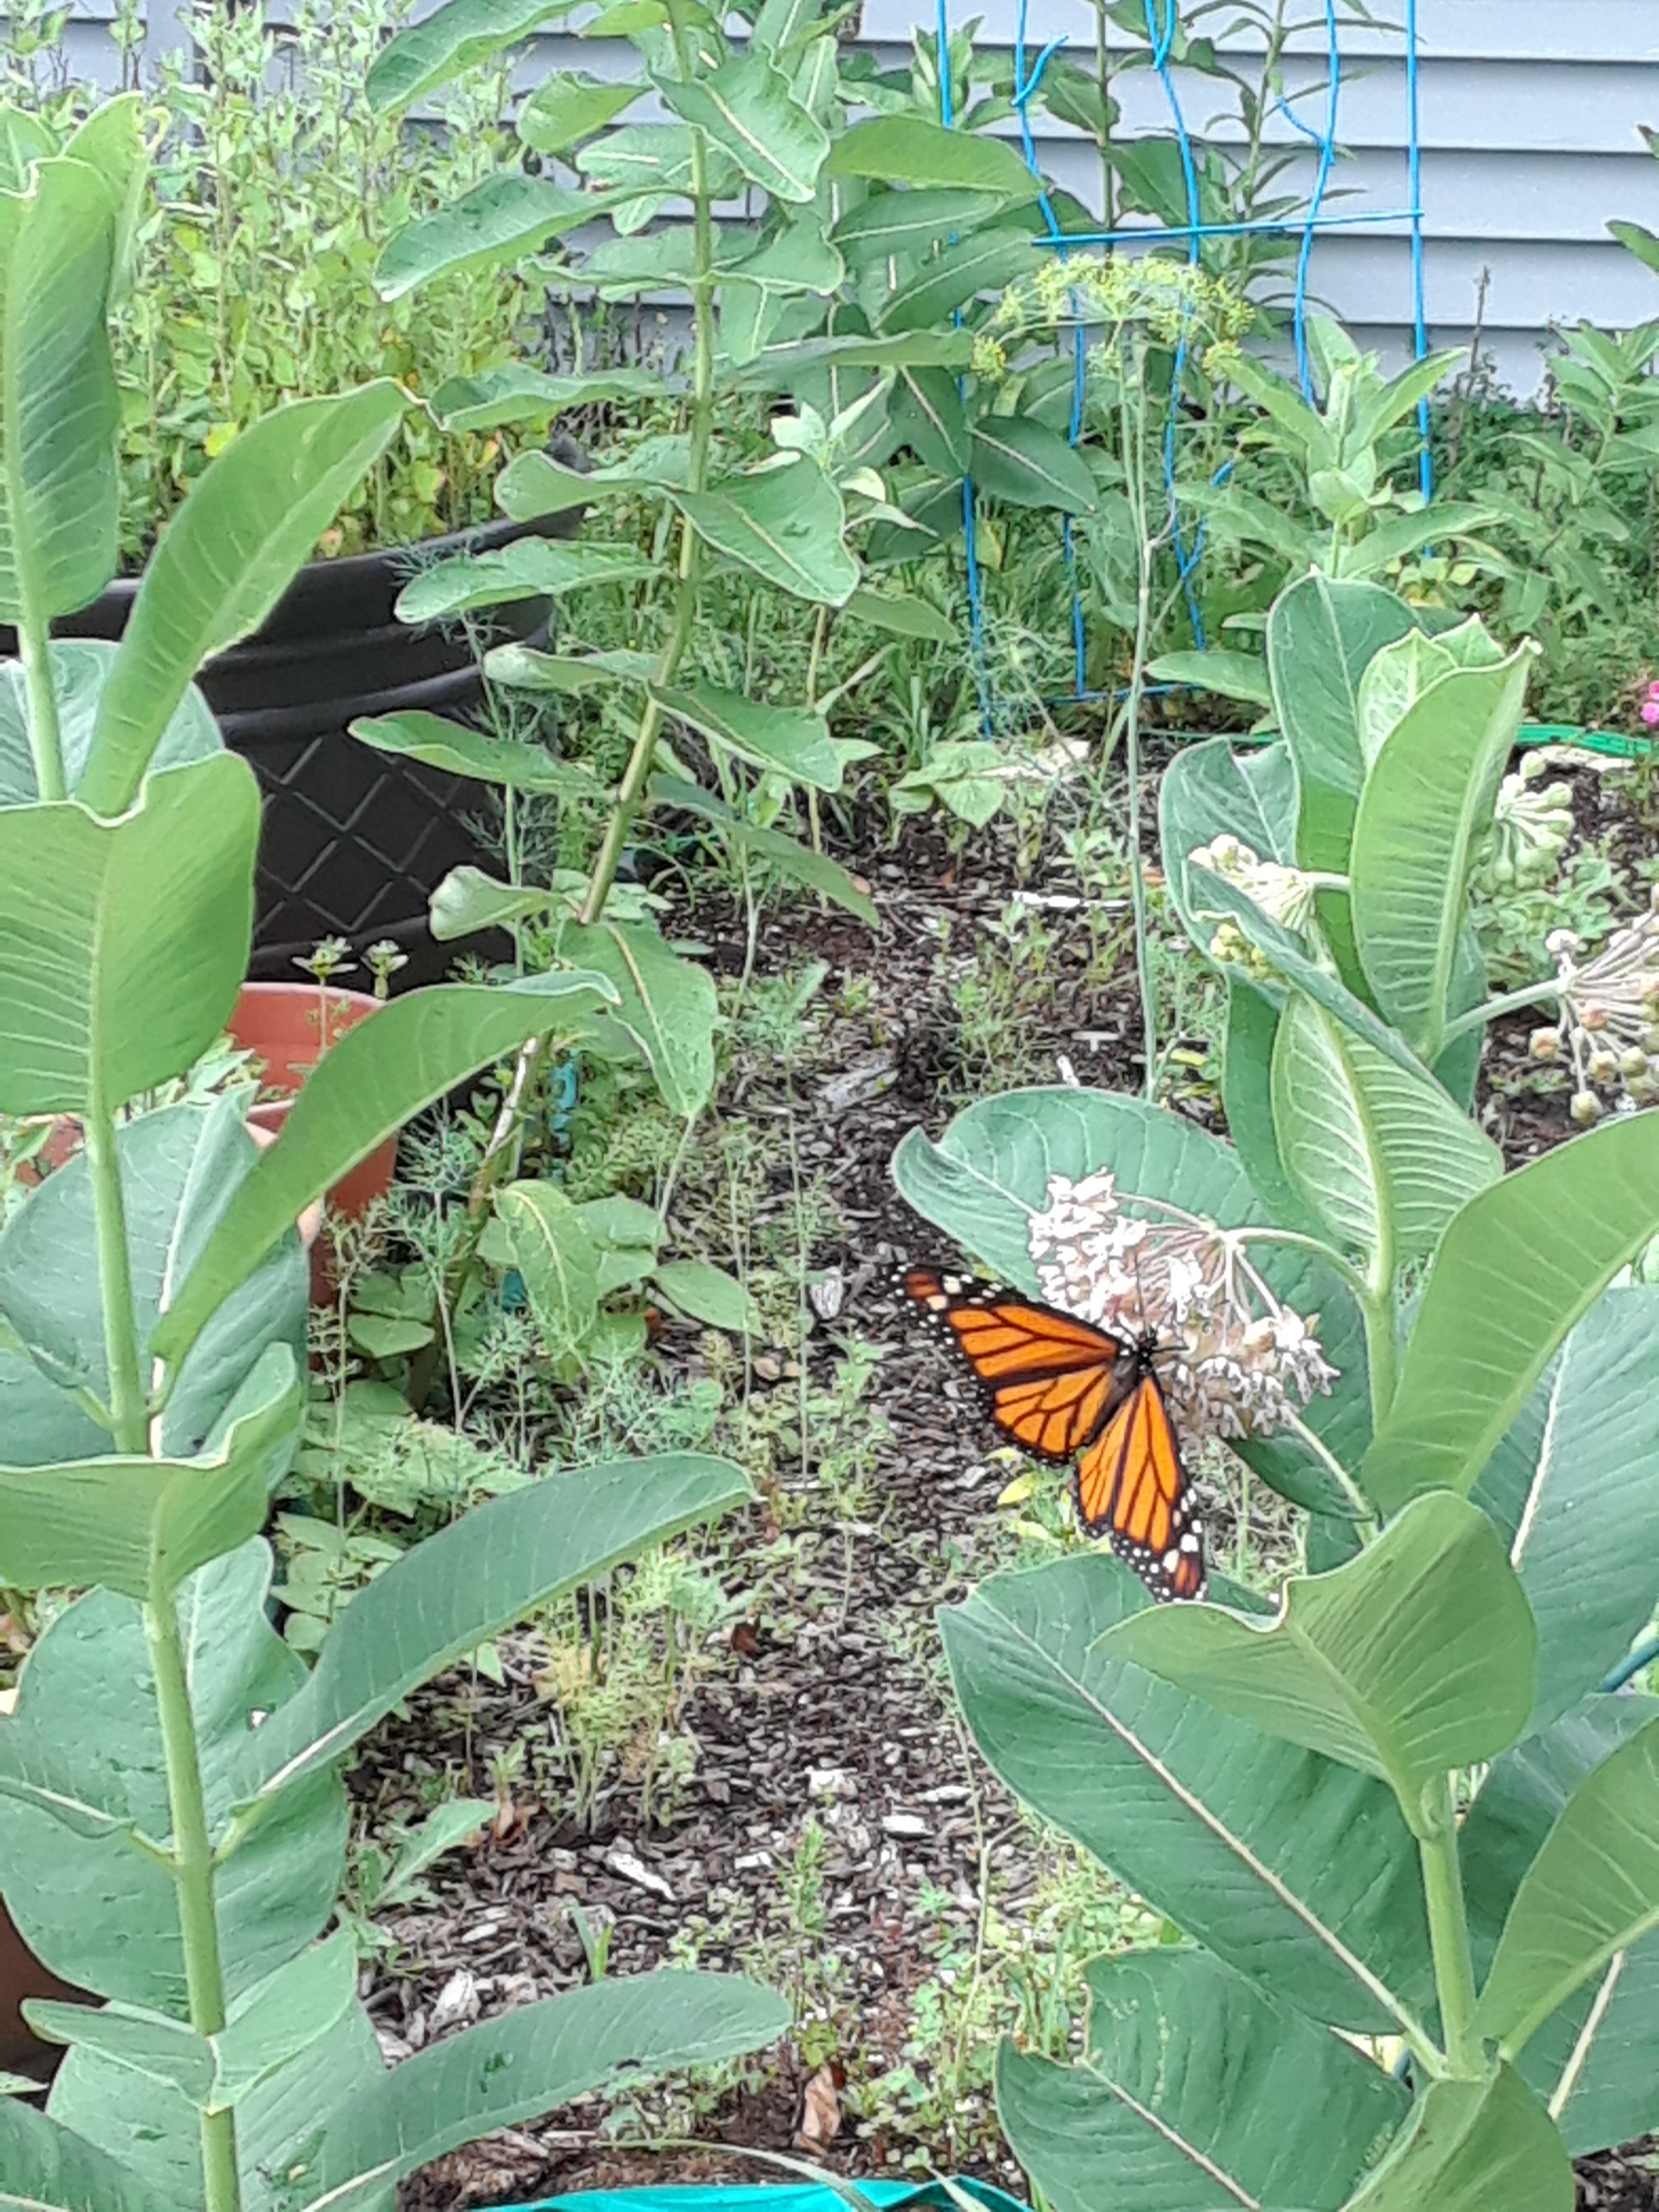 Flashback Friday: At the Playgroup garden, a monarch butterfly pollinates milkweed. nature, wildlife, animal, insect, butterfly, monarch butterfly, plant, milkweed Photo: Luciano Elementi